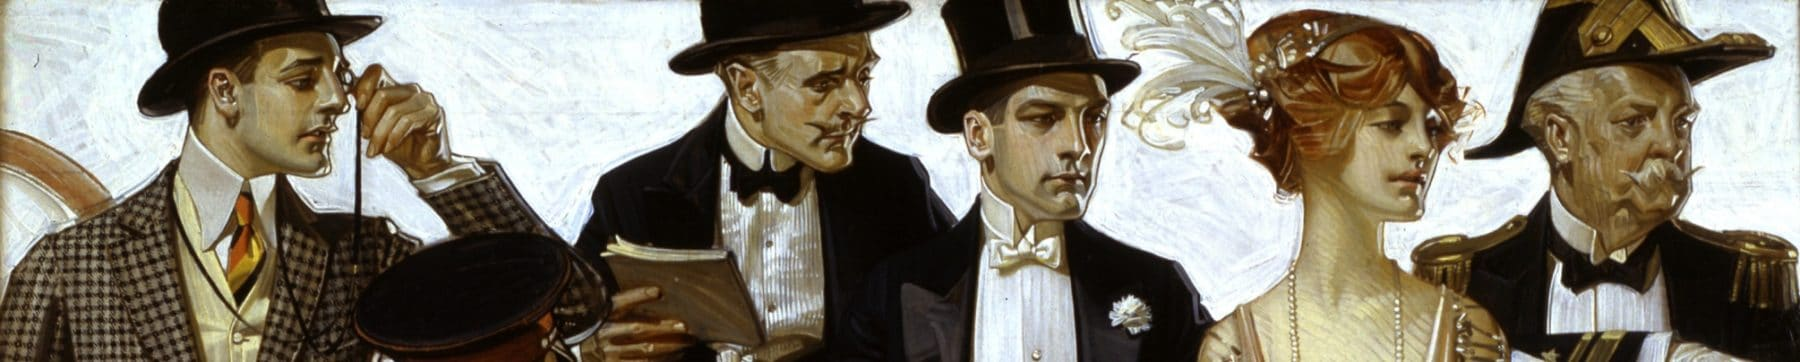 J.C. and F.X. Leyendecker